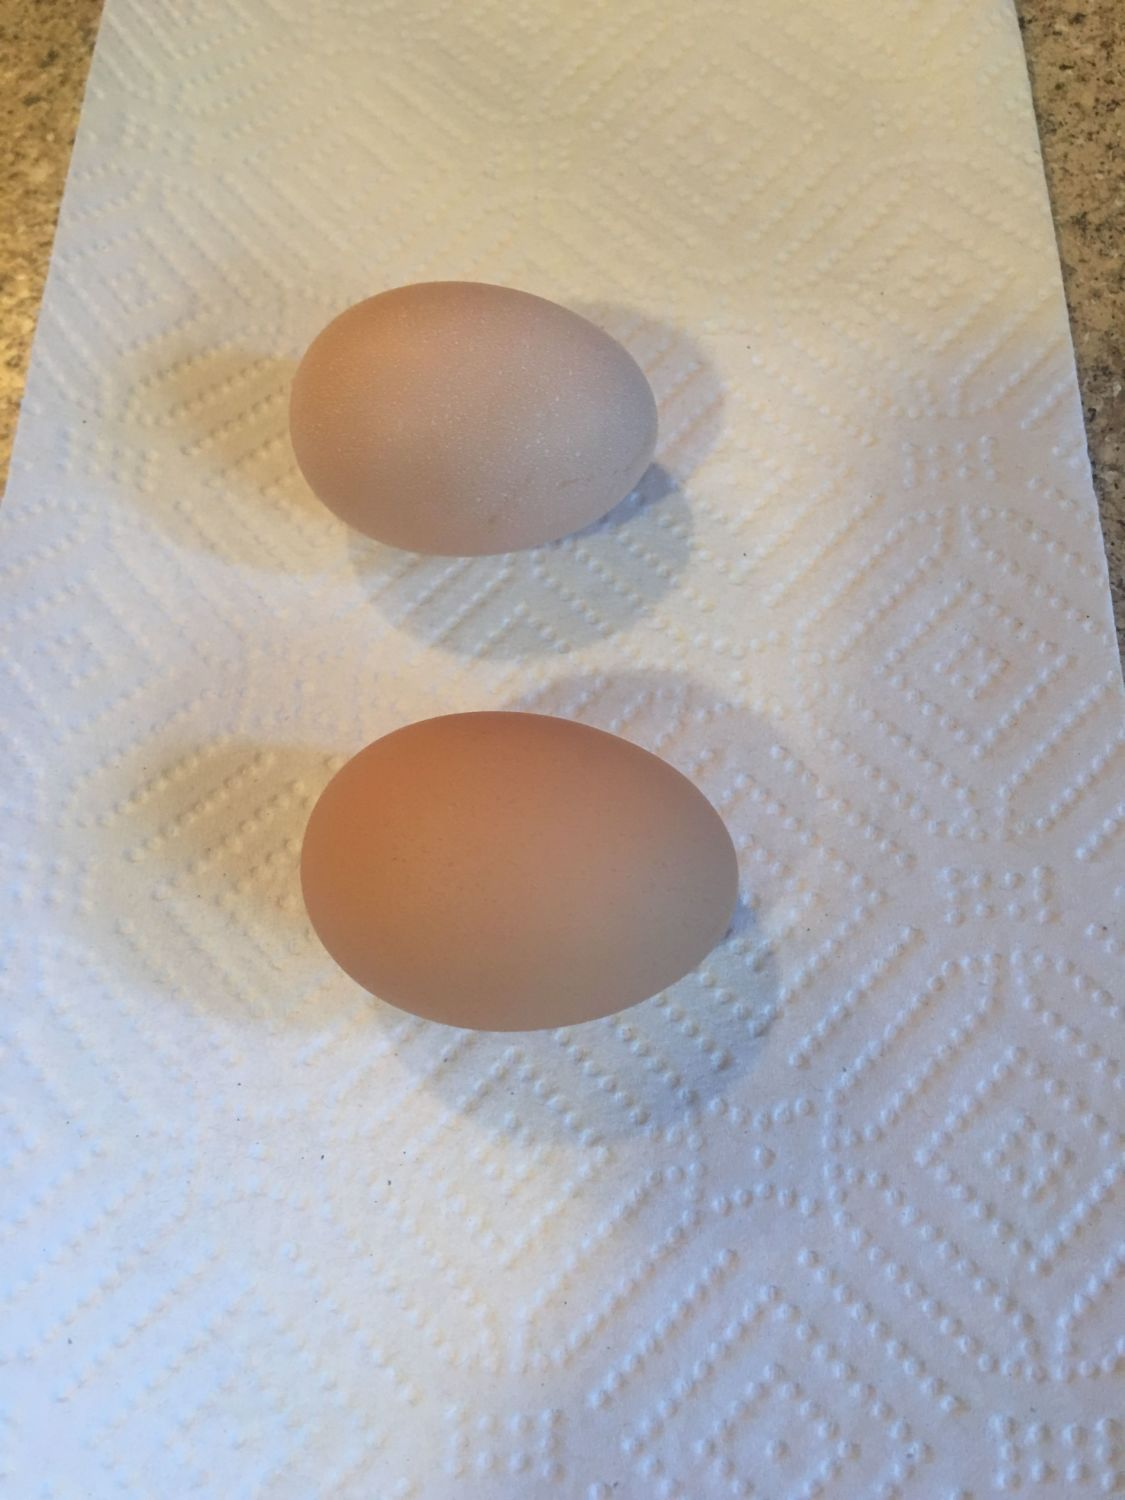 how to get my chickens to lay eggs again